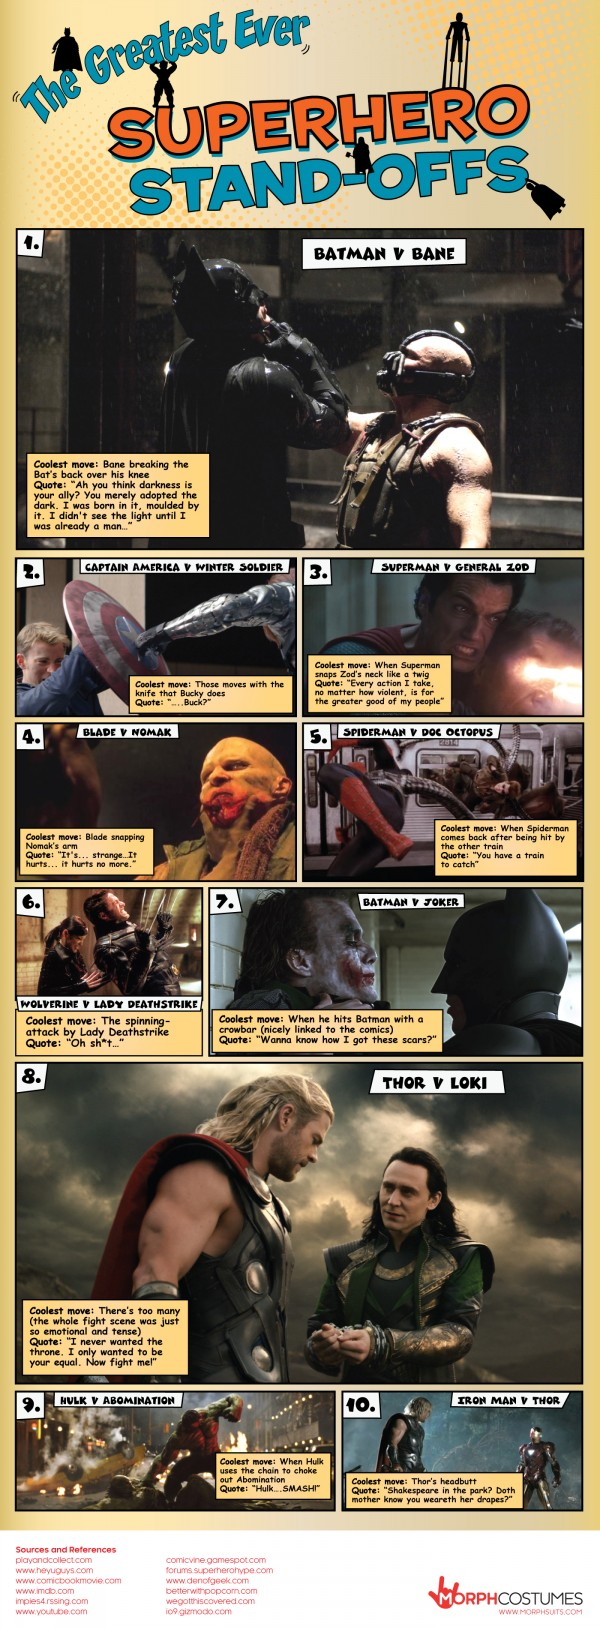 The 10 Greatest Superhero Standoffs In History (Infographic)